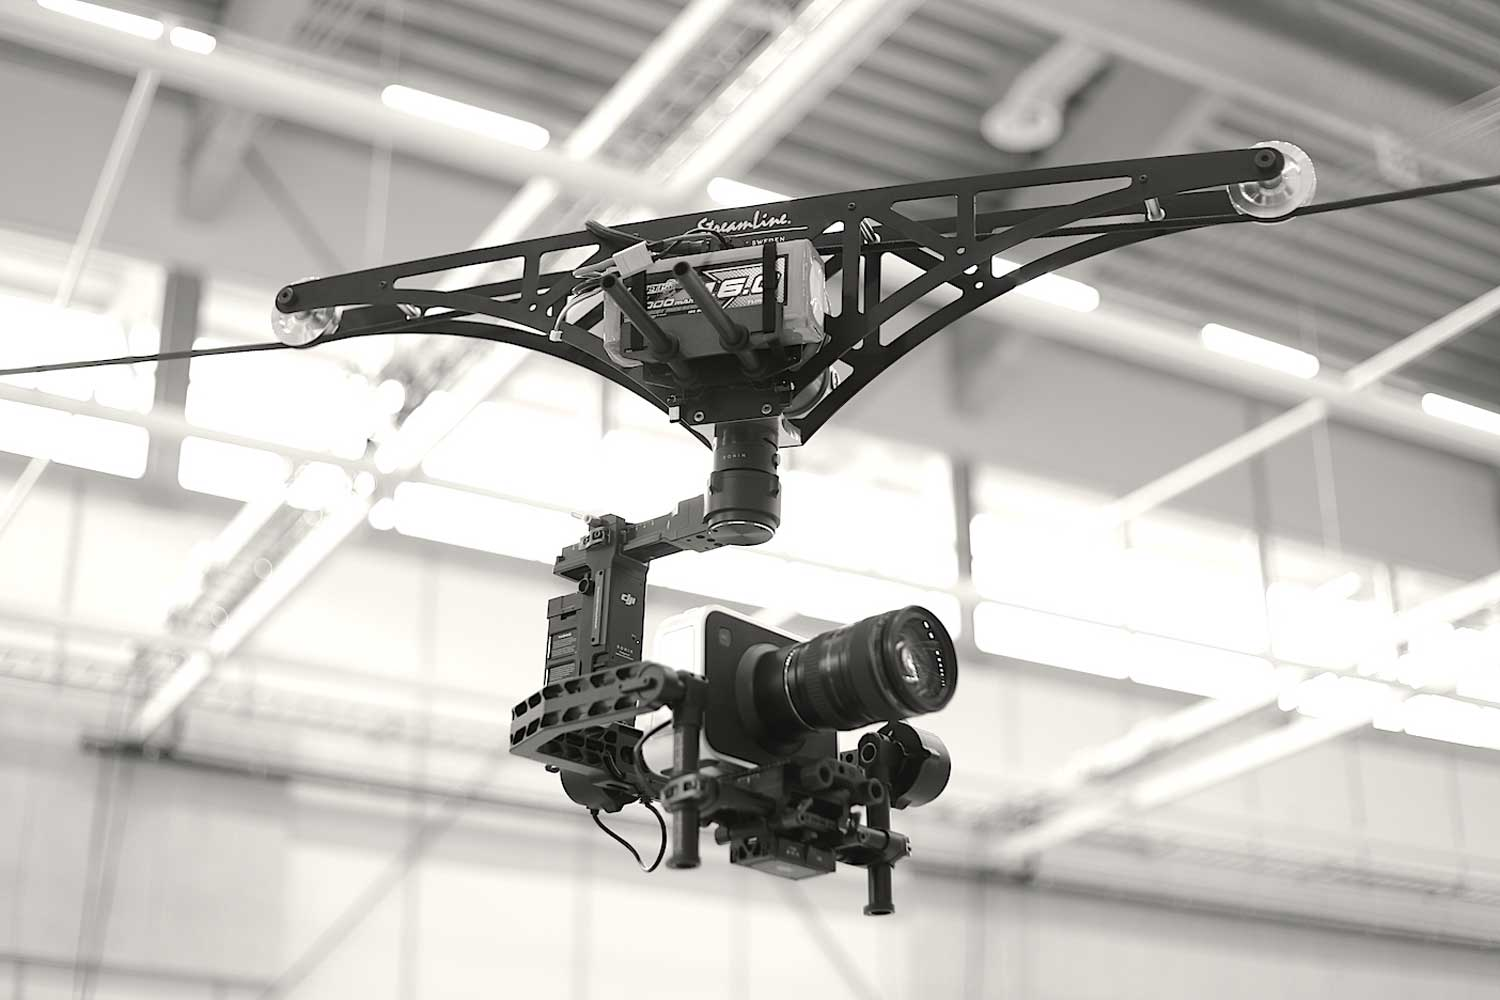 cablecam at work